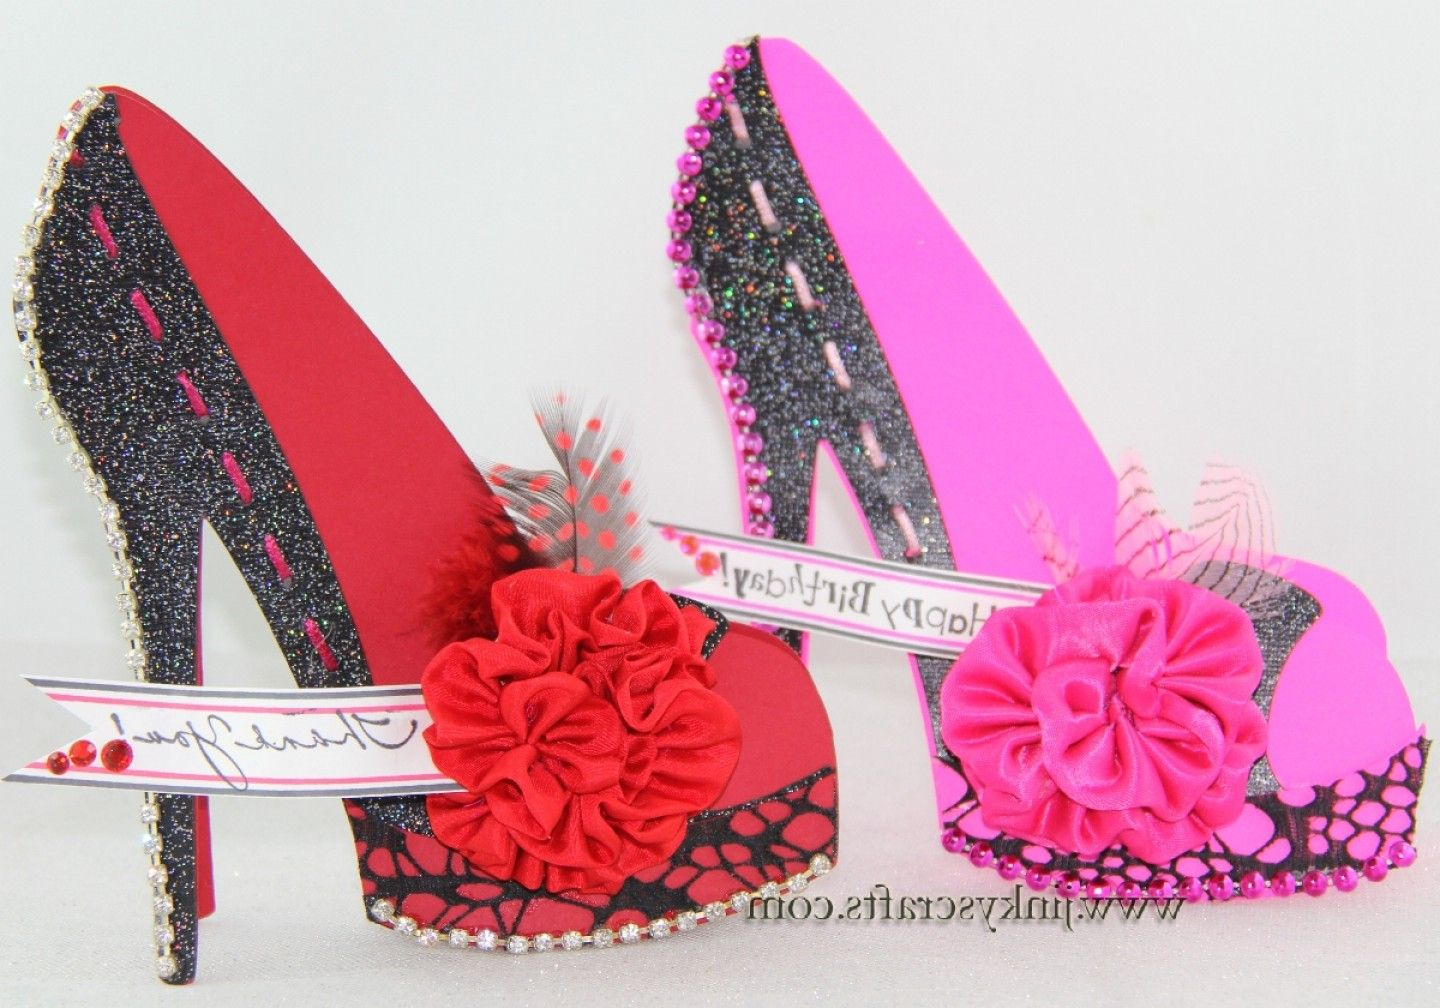 Cute High Heel Shoe D Cards Digibless With Regard To High Heel Shoe Template For Card Cumed Org Cute High Heels Shoe Template High Heel Shoes